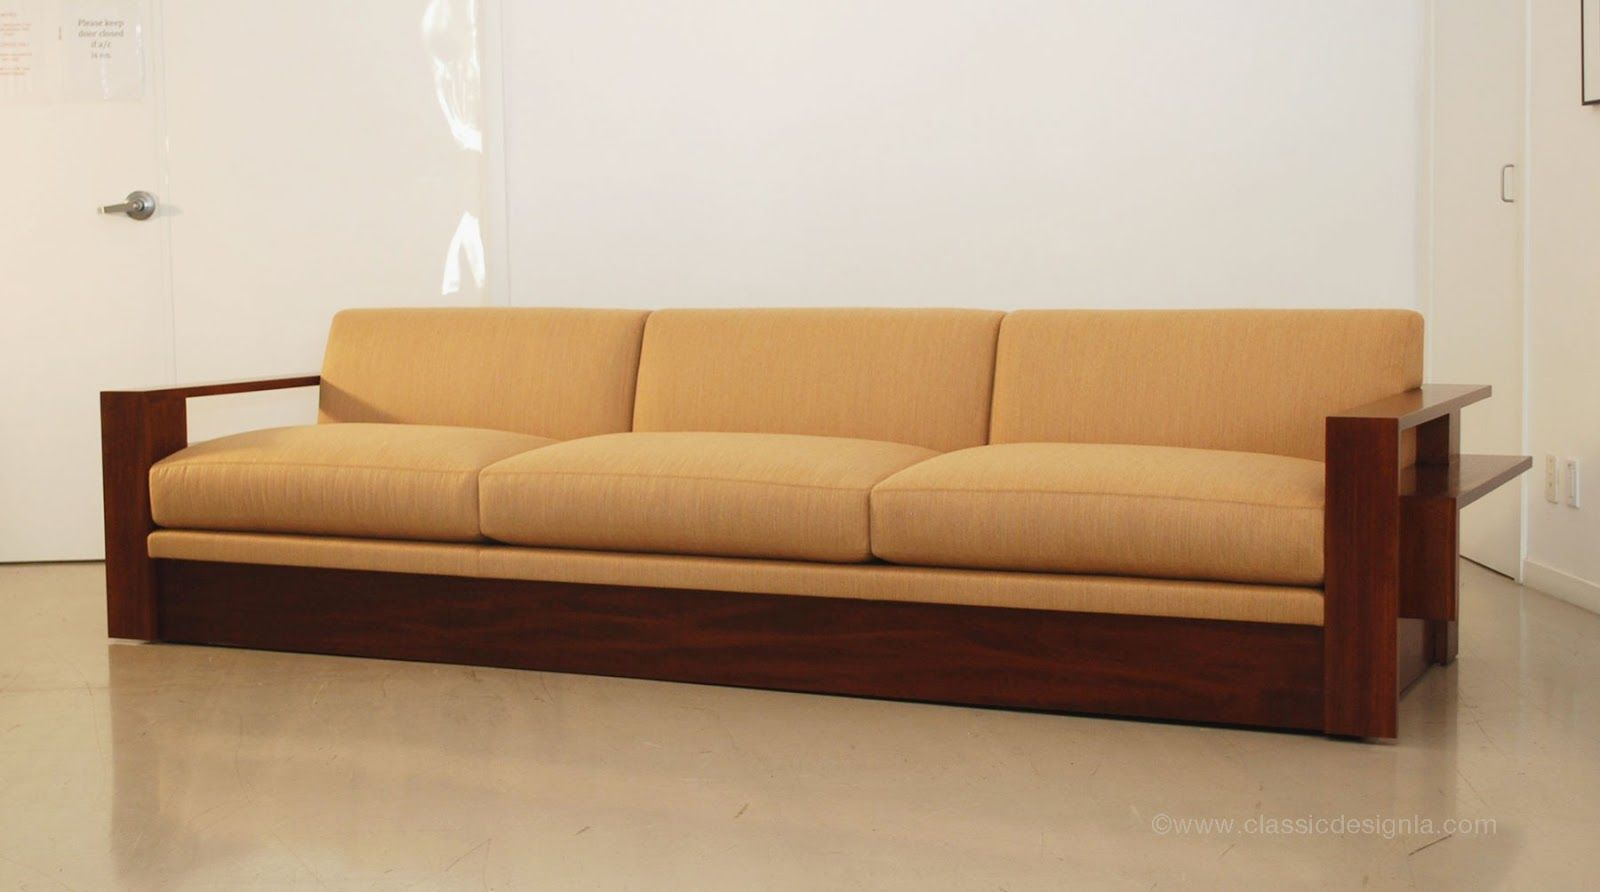 sofa frames for upholstery real leather corner bed with storage how to make a wooden frame plywood inspiration